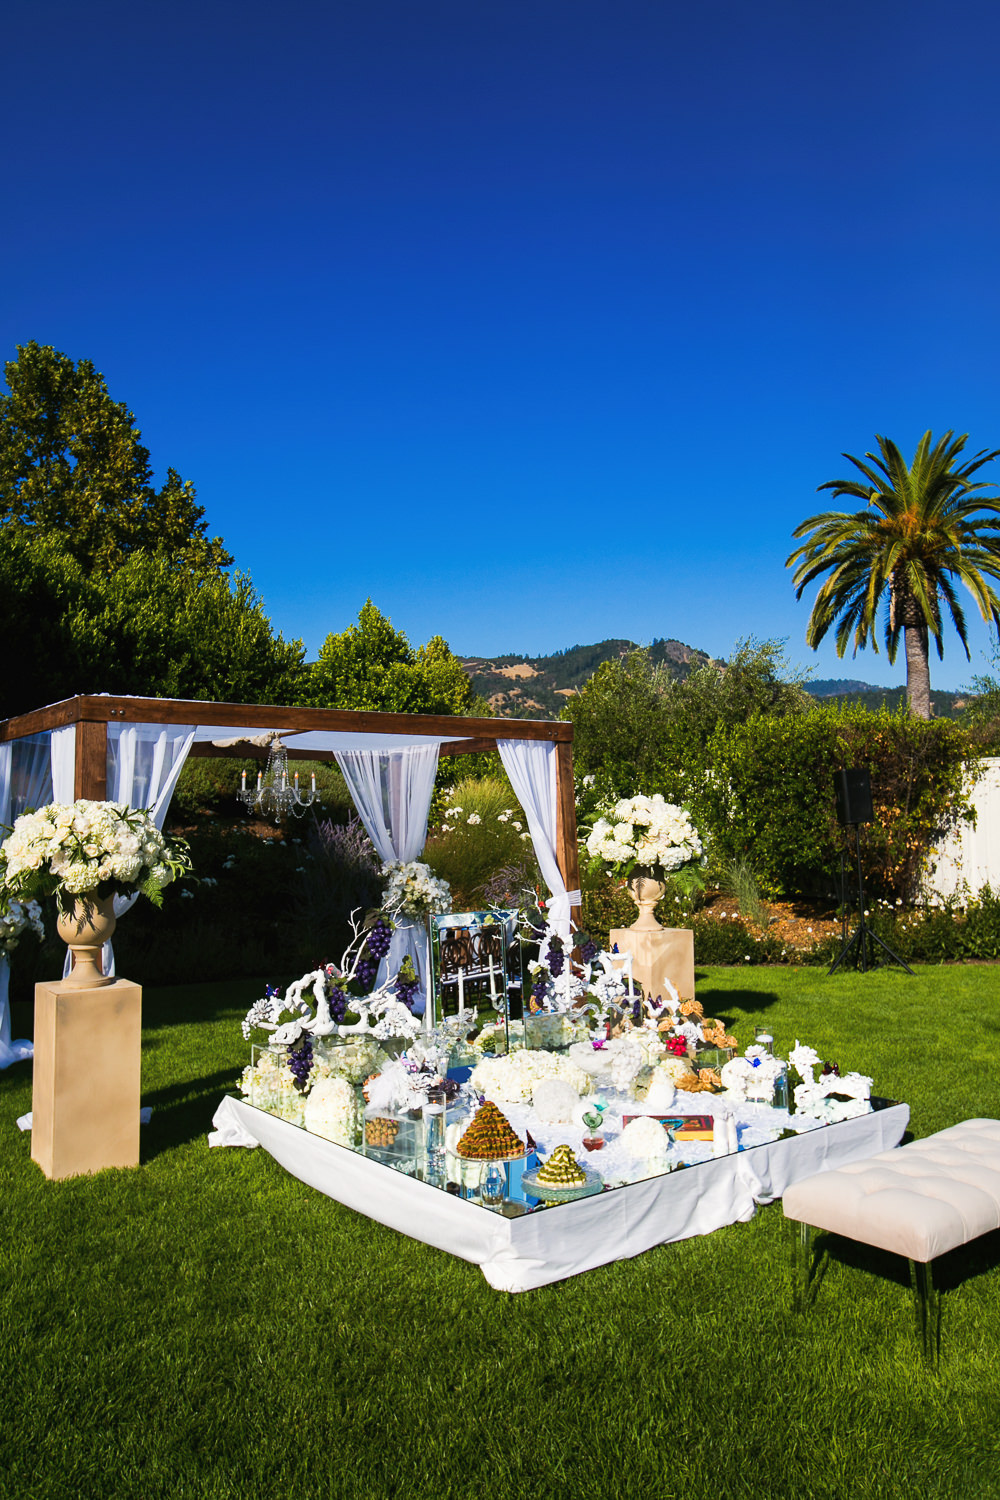 Traditional Sofreh setup for Persian Ceremony at Solage